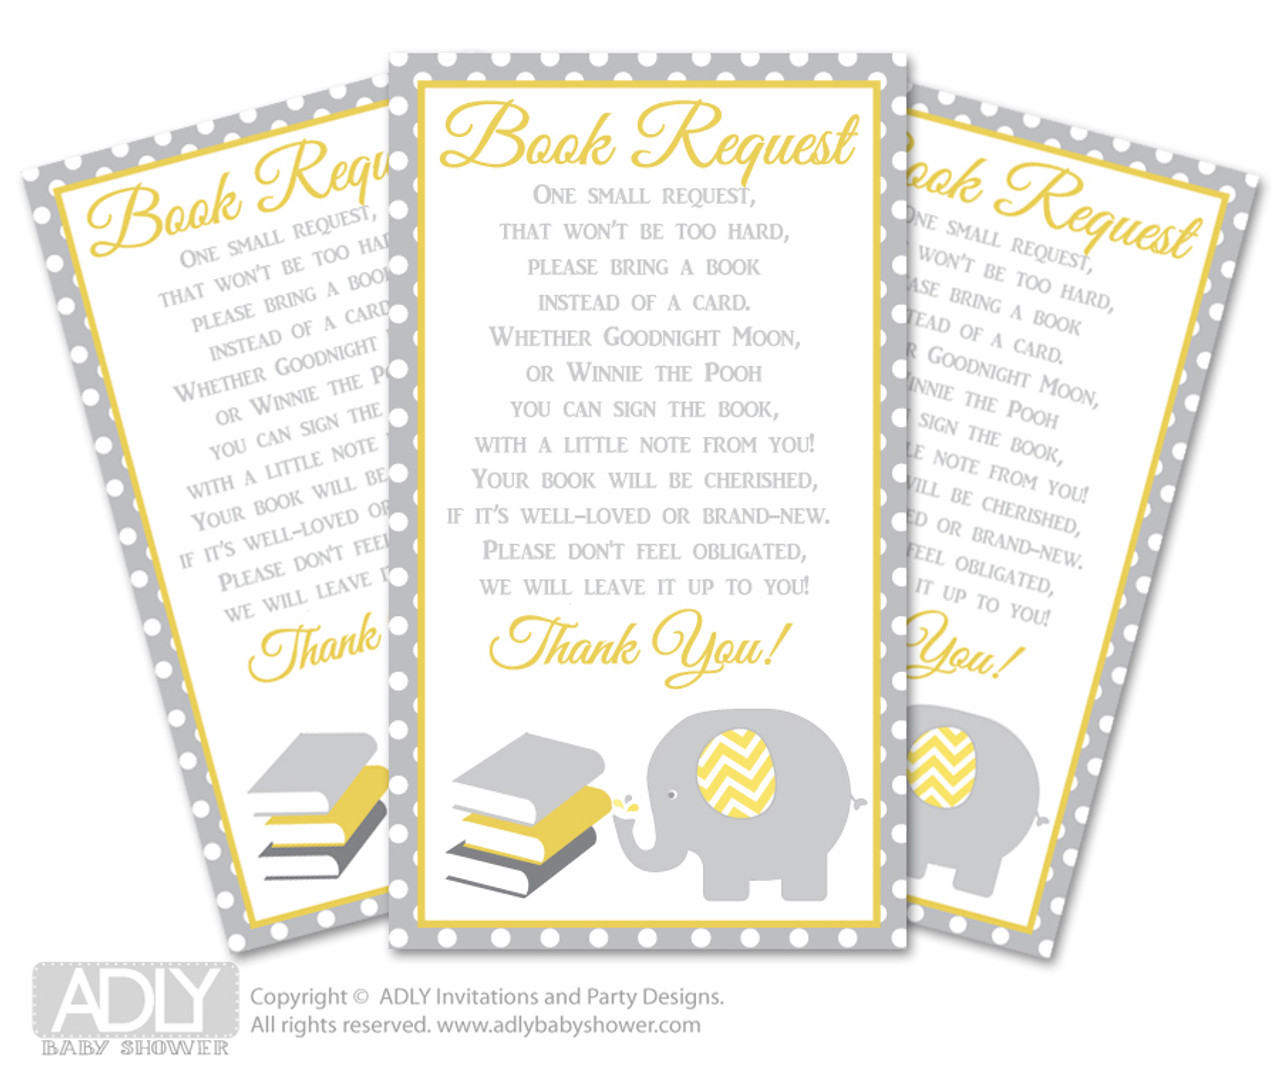 Request A Book Instead Of Card For Neutral Elephant Baby Shower Or Birthday Printable DIY Tickets Chevron Yellow Grey